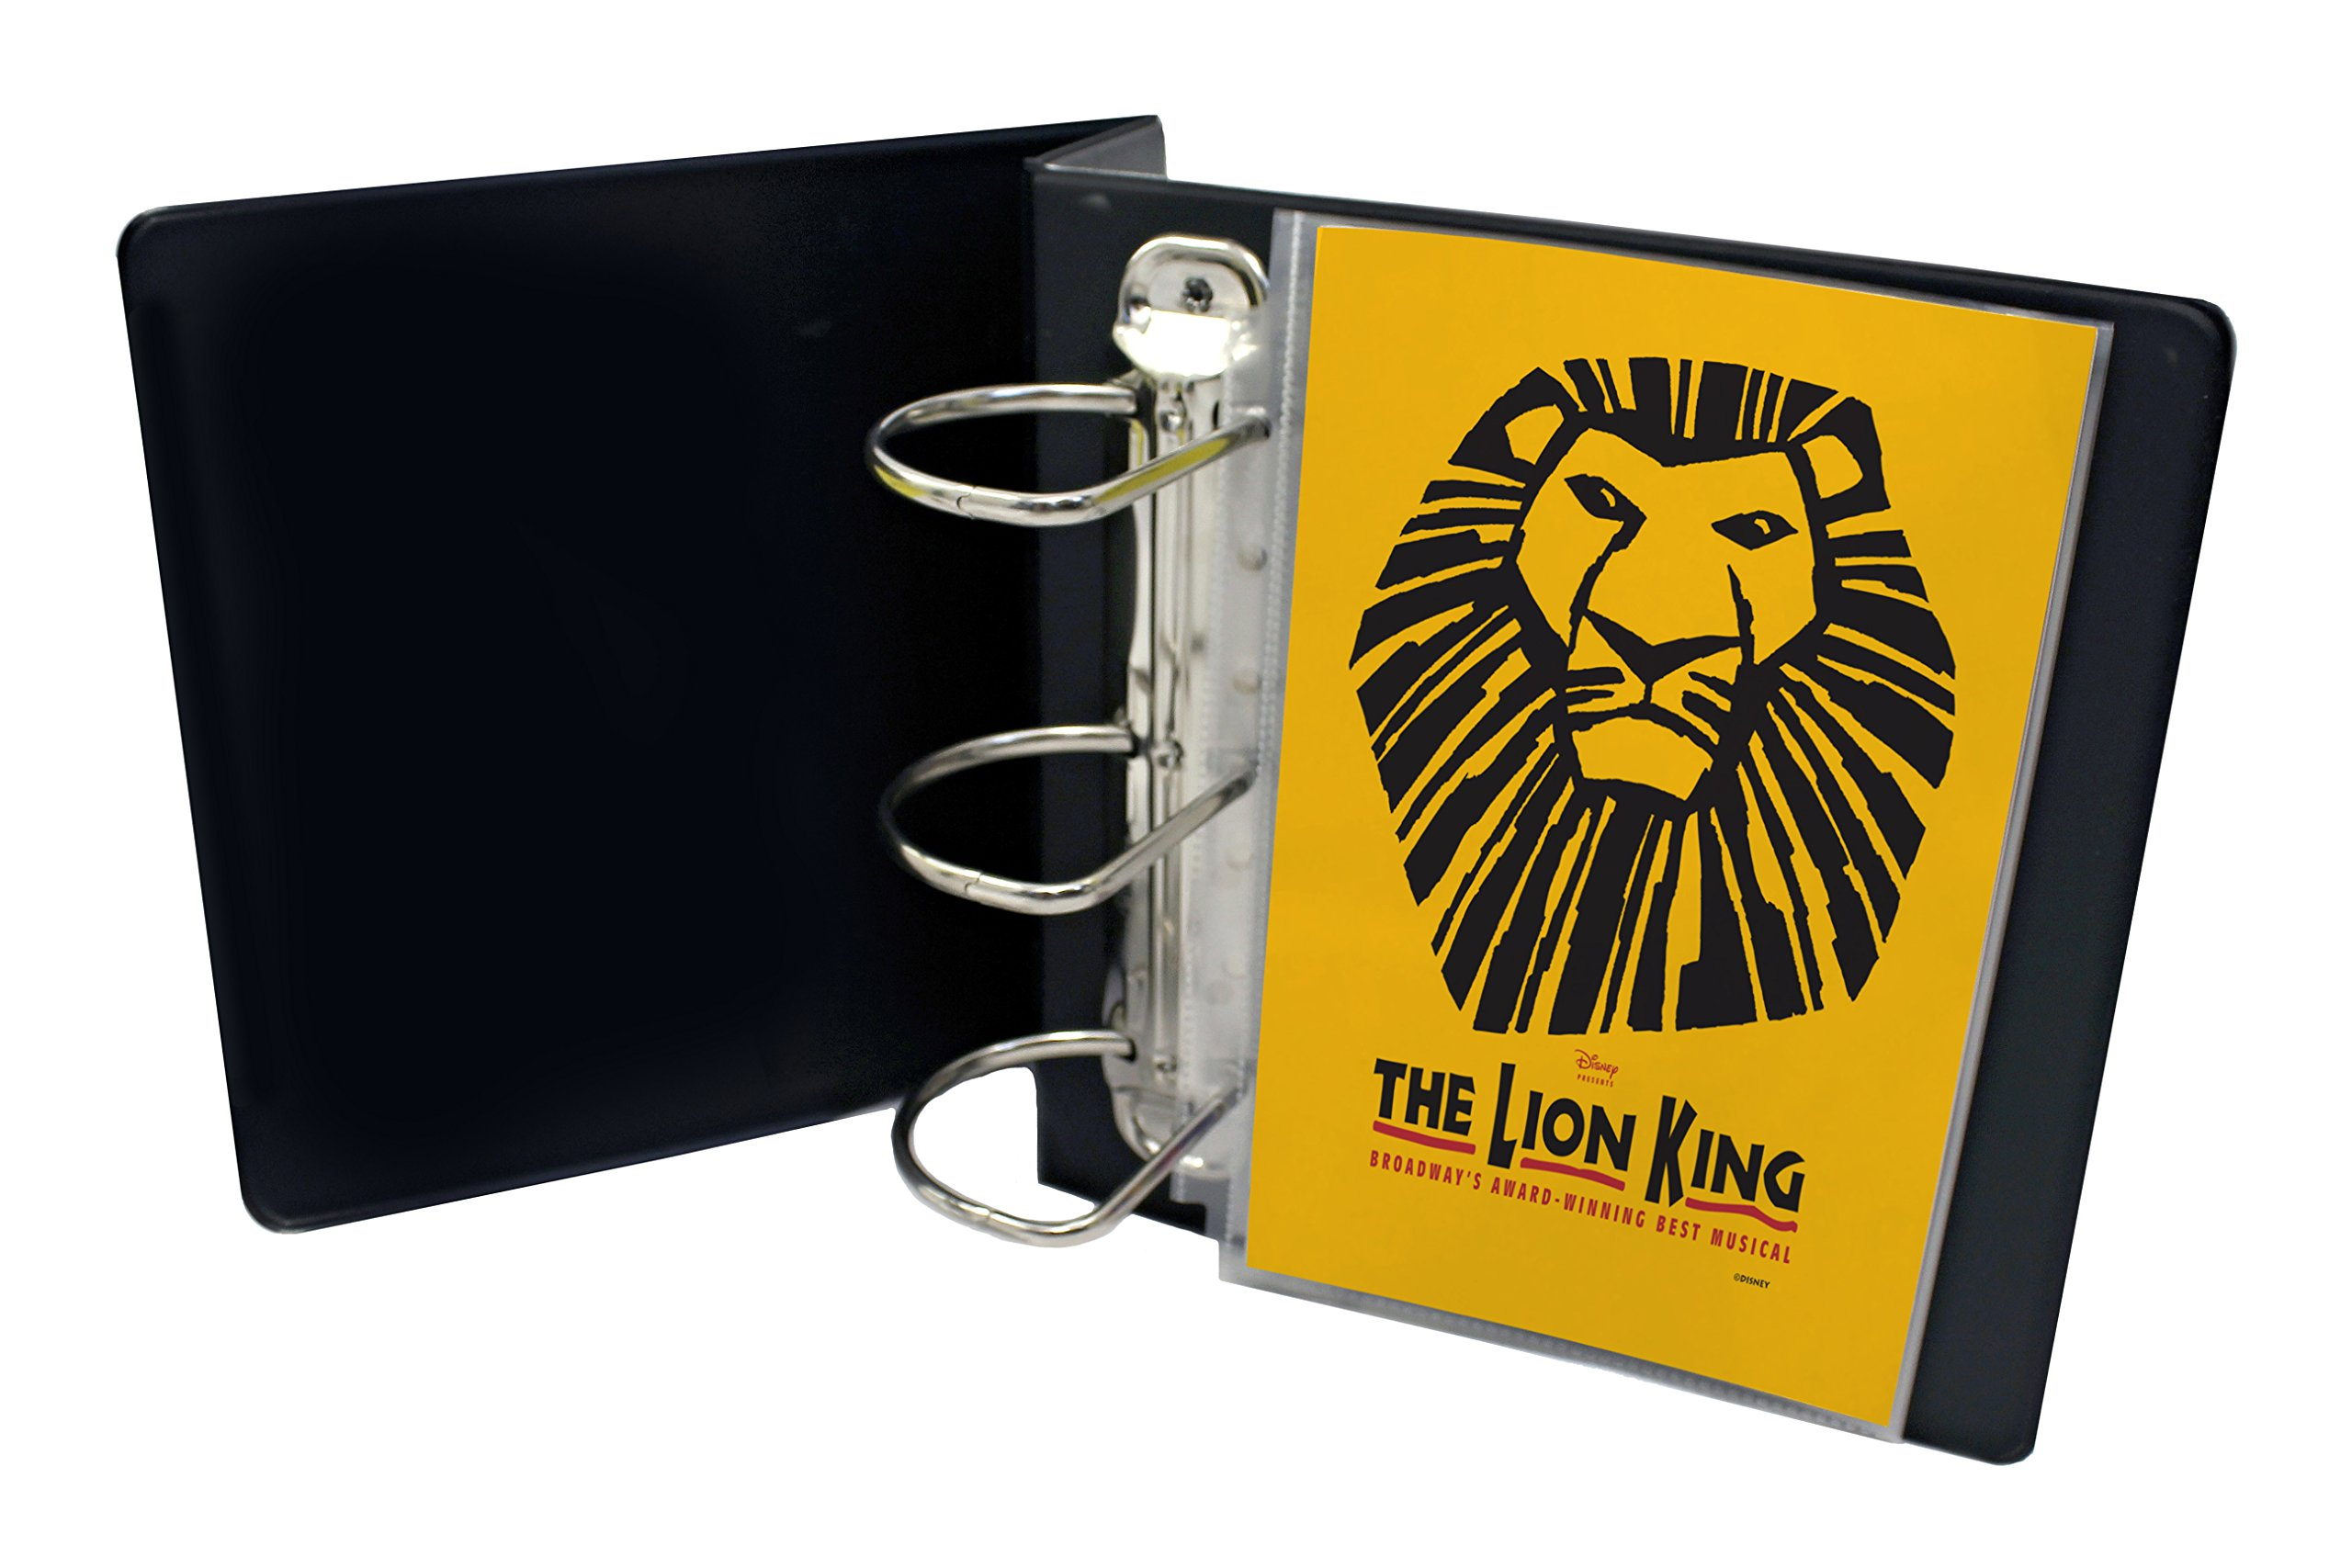 My Broadway Binder: Stylish Broadway Playbill Binder Organizer, 3.5'' Spine Holds up to 25 Broadway Playbills, Mini Durable Binder, Black Vinyl with Gold Foil Lettering, Sheet Inserts Sold Separately